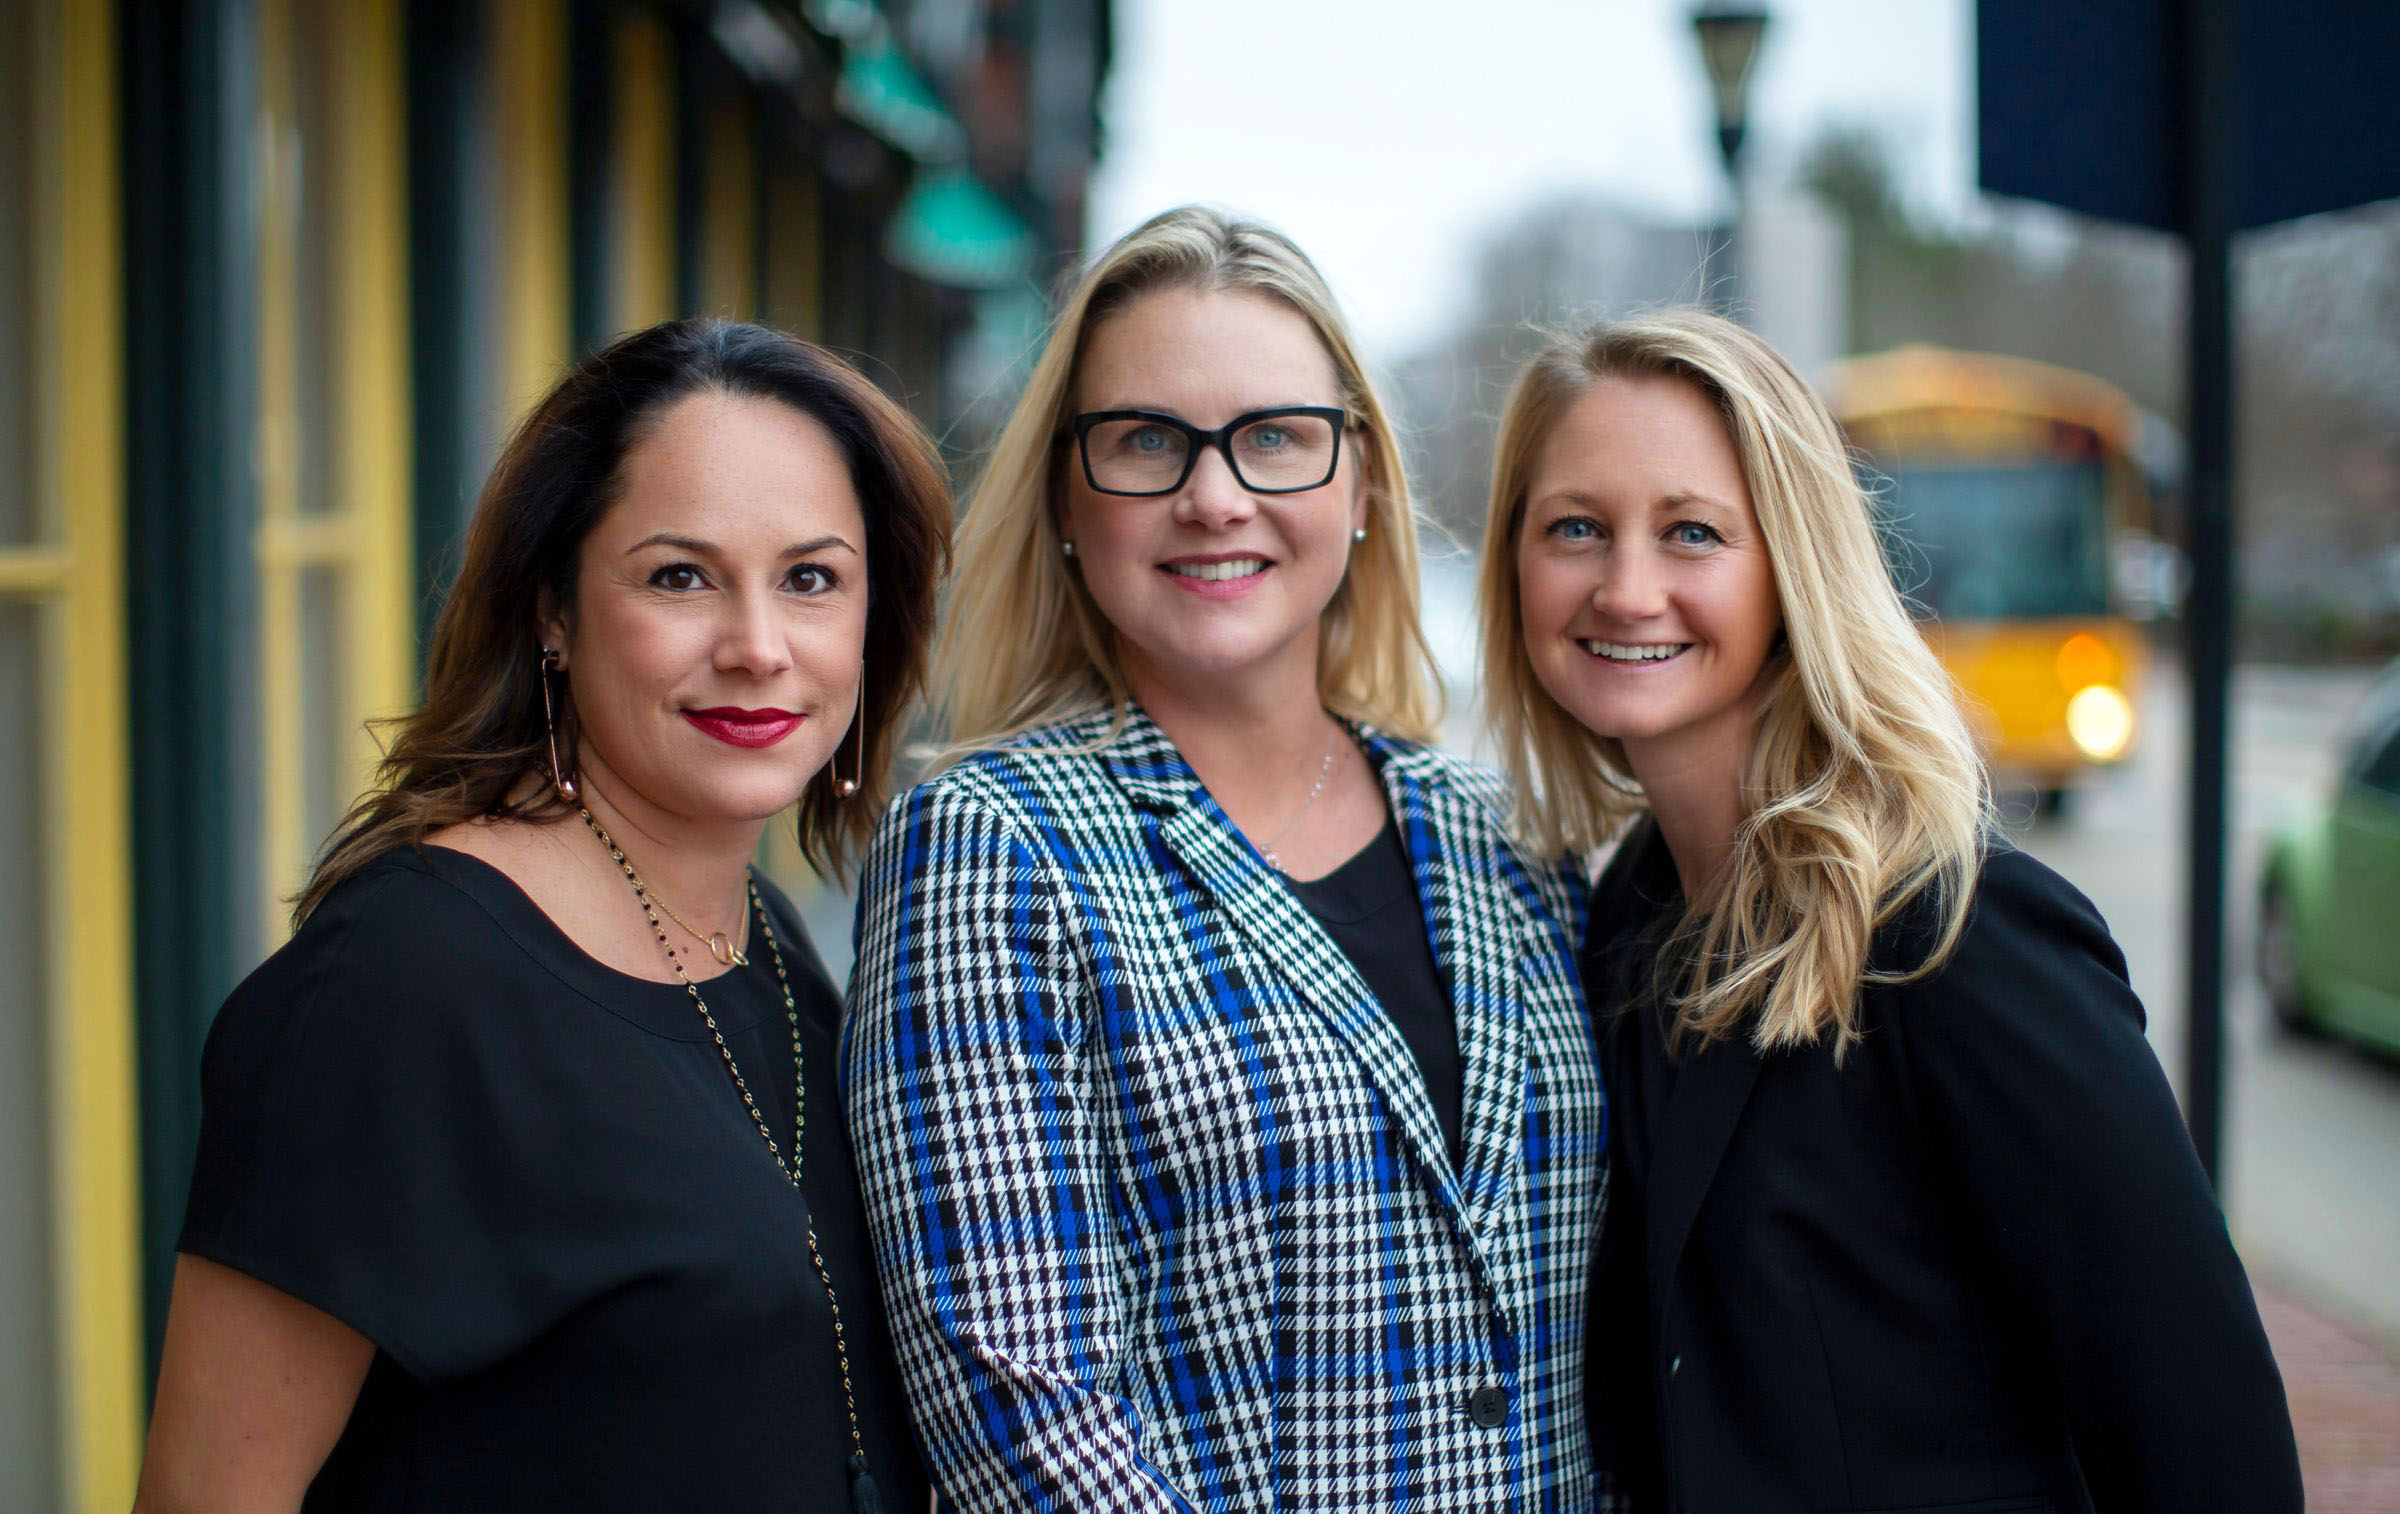 LILA DELMAN REAL ESTATE WELCOMES THE NEWPORT LIVING GROUP AS THE NEWEST MEMBERS OF ITS NEWPORT OFFICE